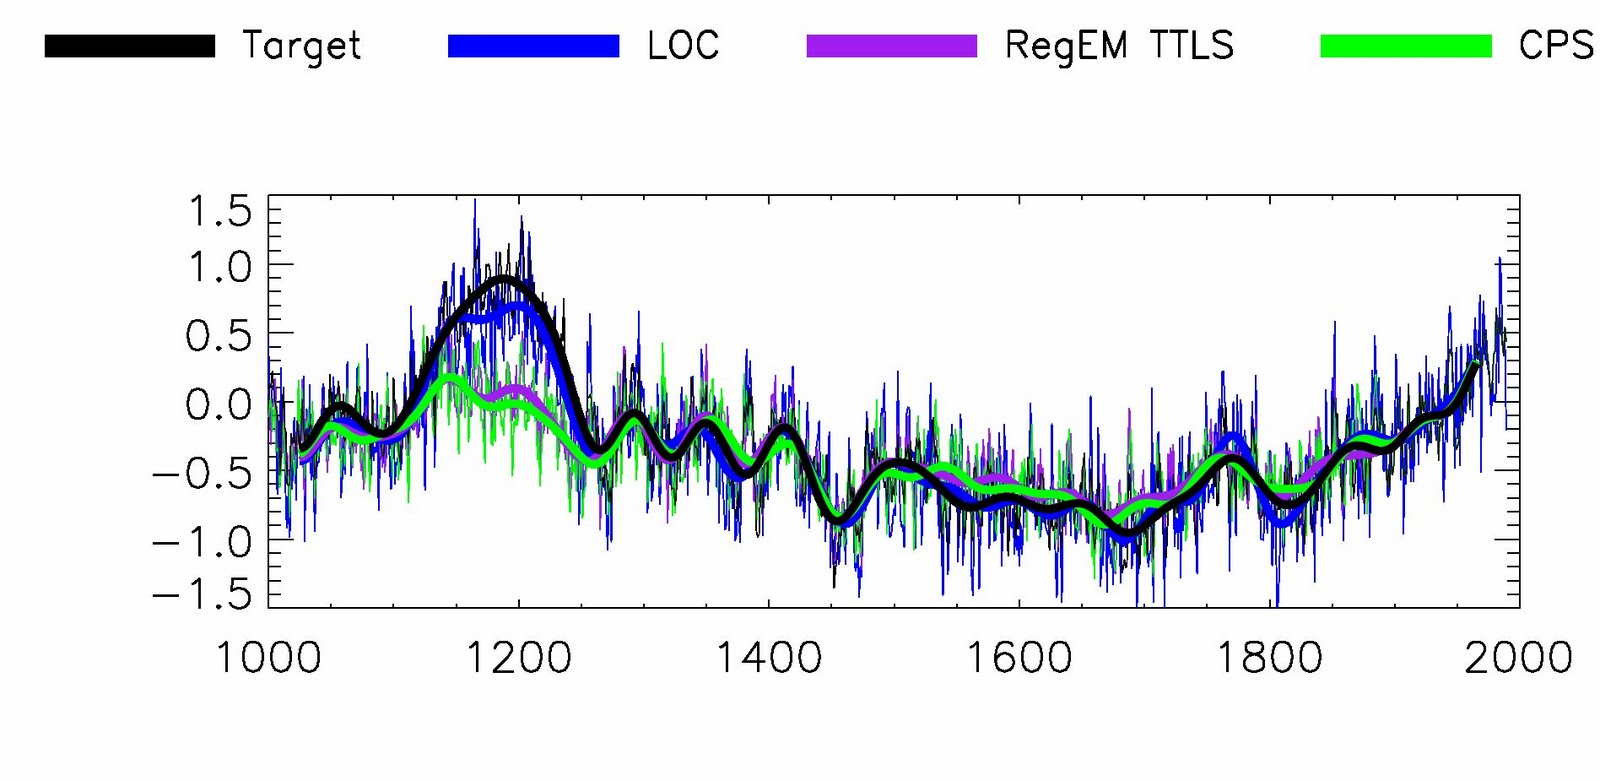 Regarding the divergence of proxy and instrument temps in the latter half of the 20th century?